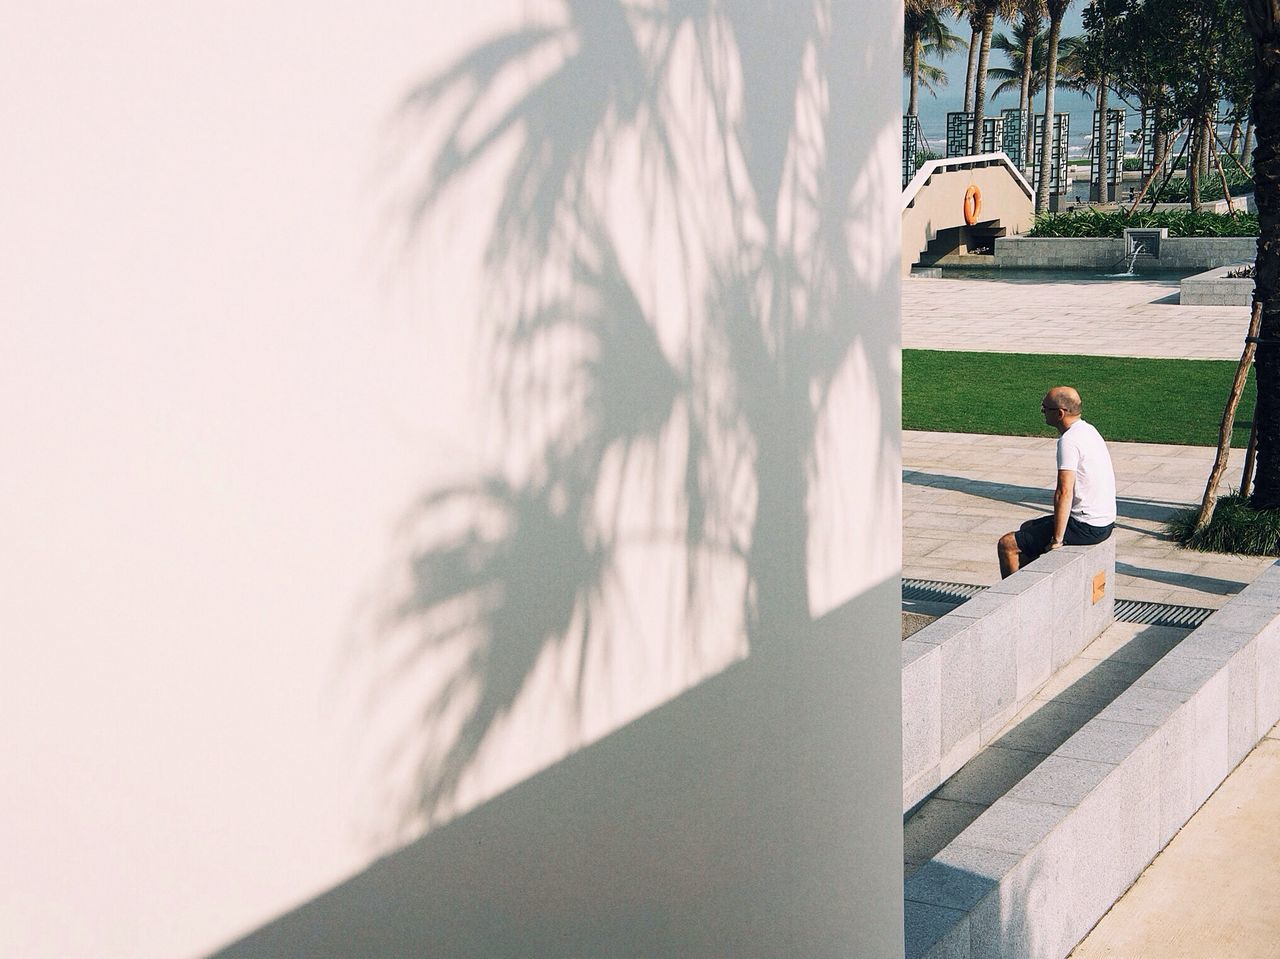 Side view of man with shadow of palm leaves on wall